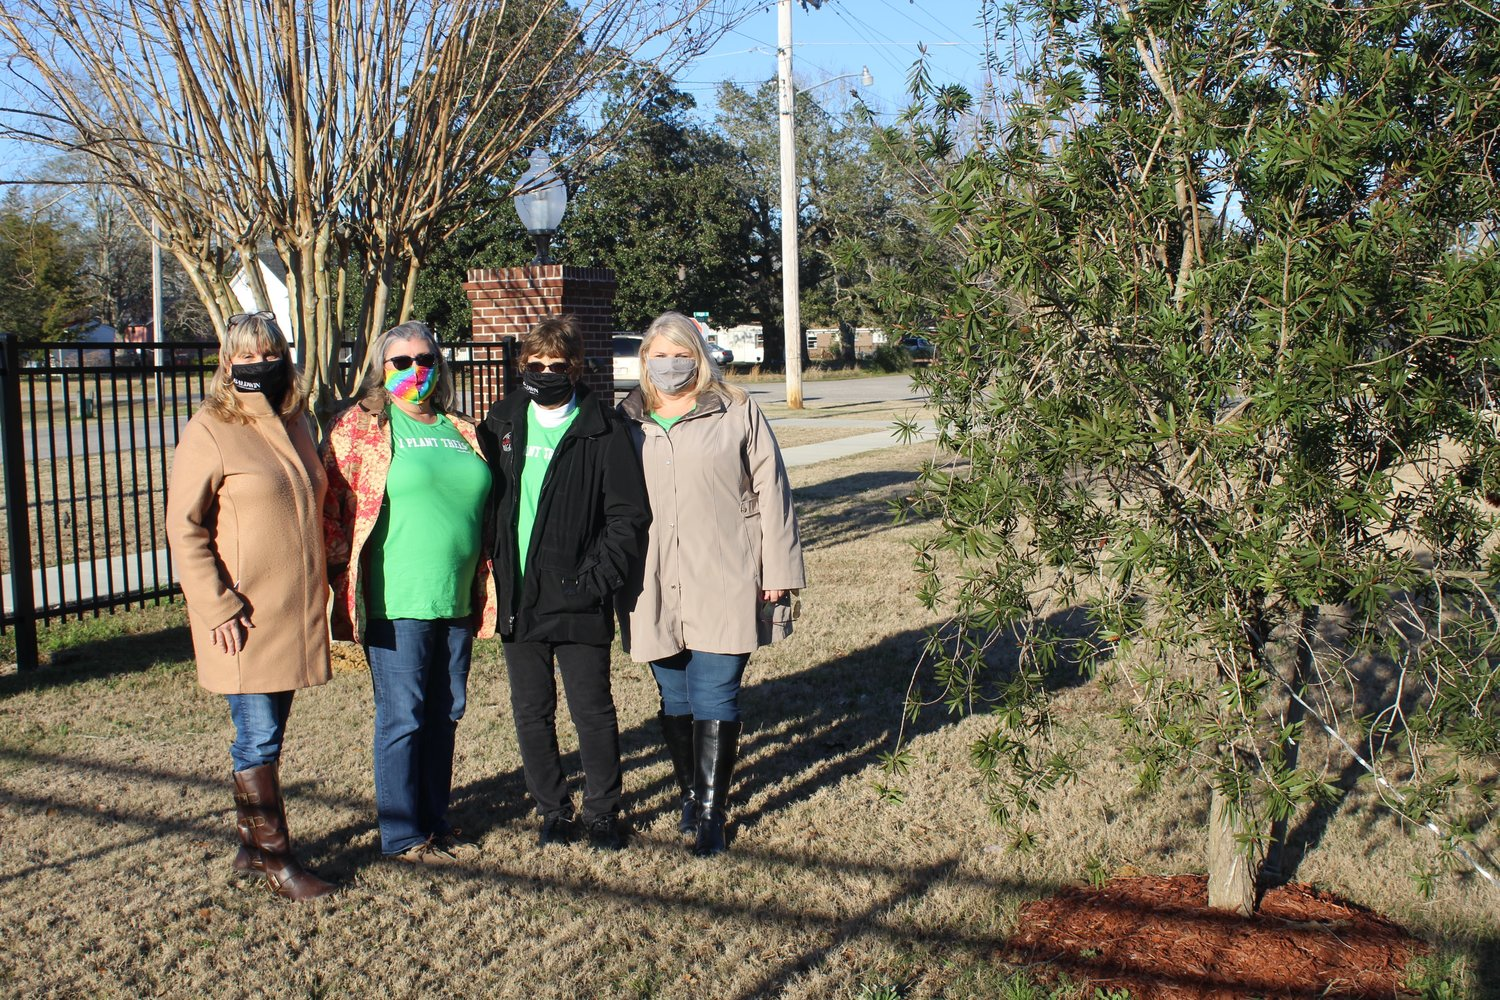 Members of the Robertsdale Park, Street and Tree Committee are pictured with one of this year's tree, a bottle brush. A second bottle brush tree was also planted in Honeybee Park for the annual Arbor Day celebration. Pictured are, from left, Ruthie Campbell, June Salac, Sue Cooper and Amanda Brill. Committee members not pictured are Chairman Sonja Connor, Cindy Adams, Nell Calloway and Jodee Darby.